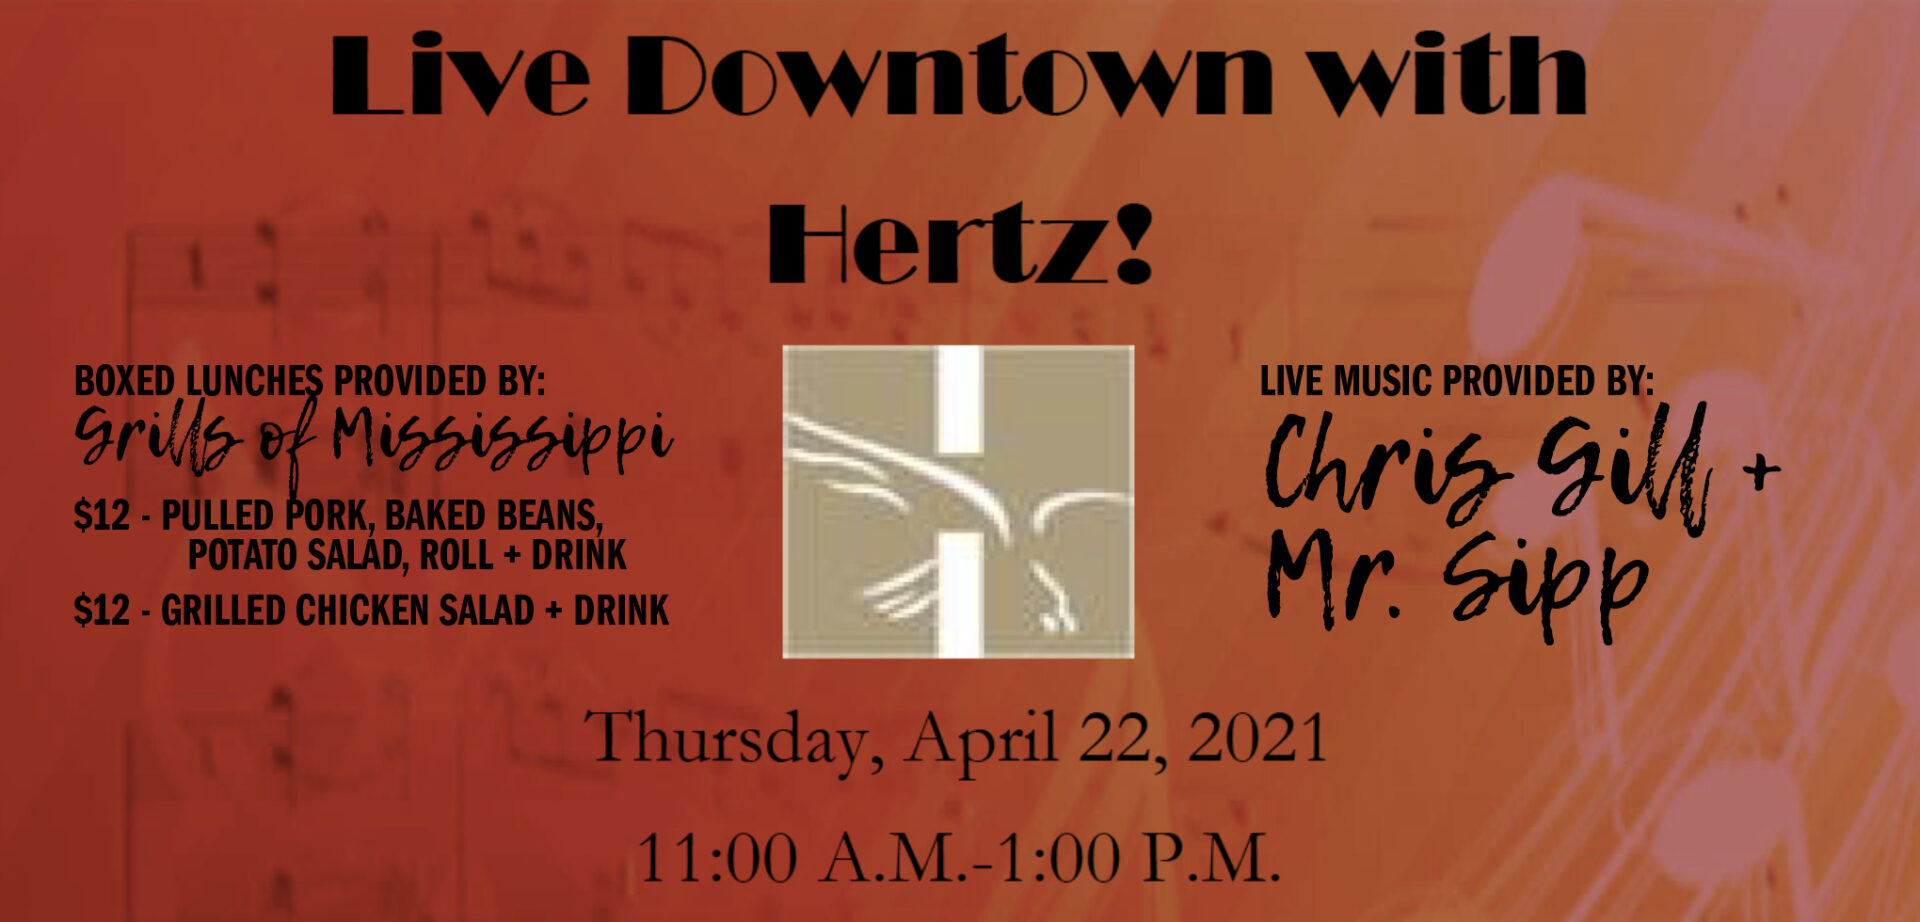 Live Downtown with Hertz!